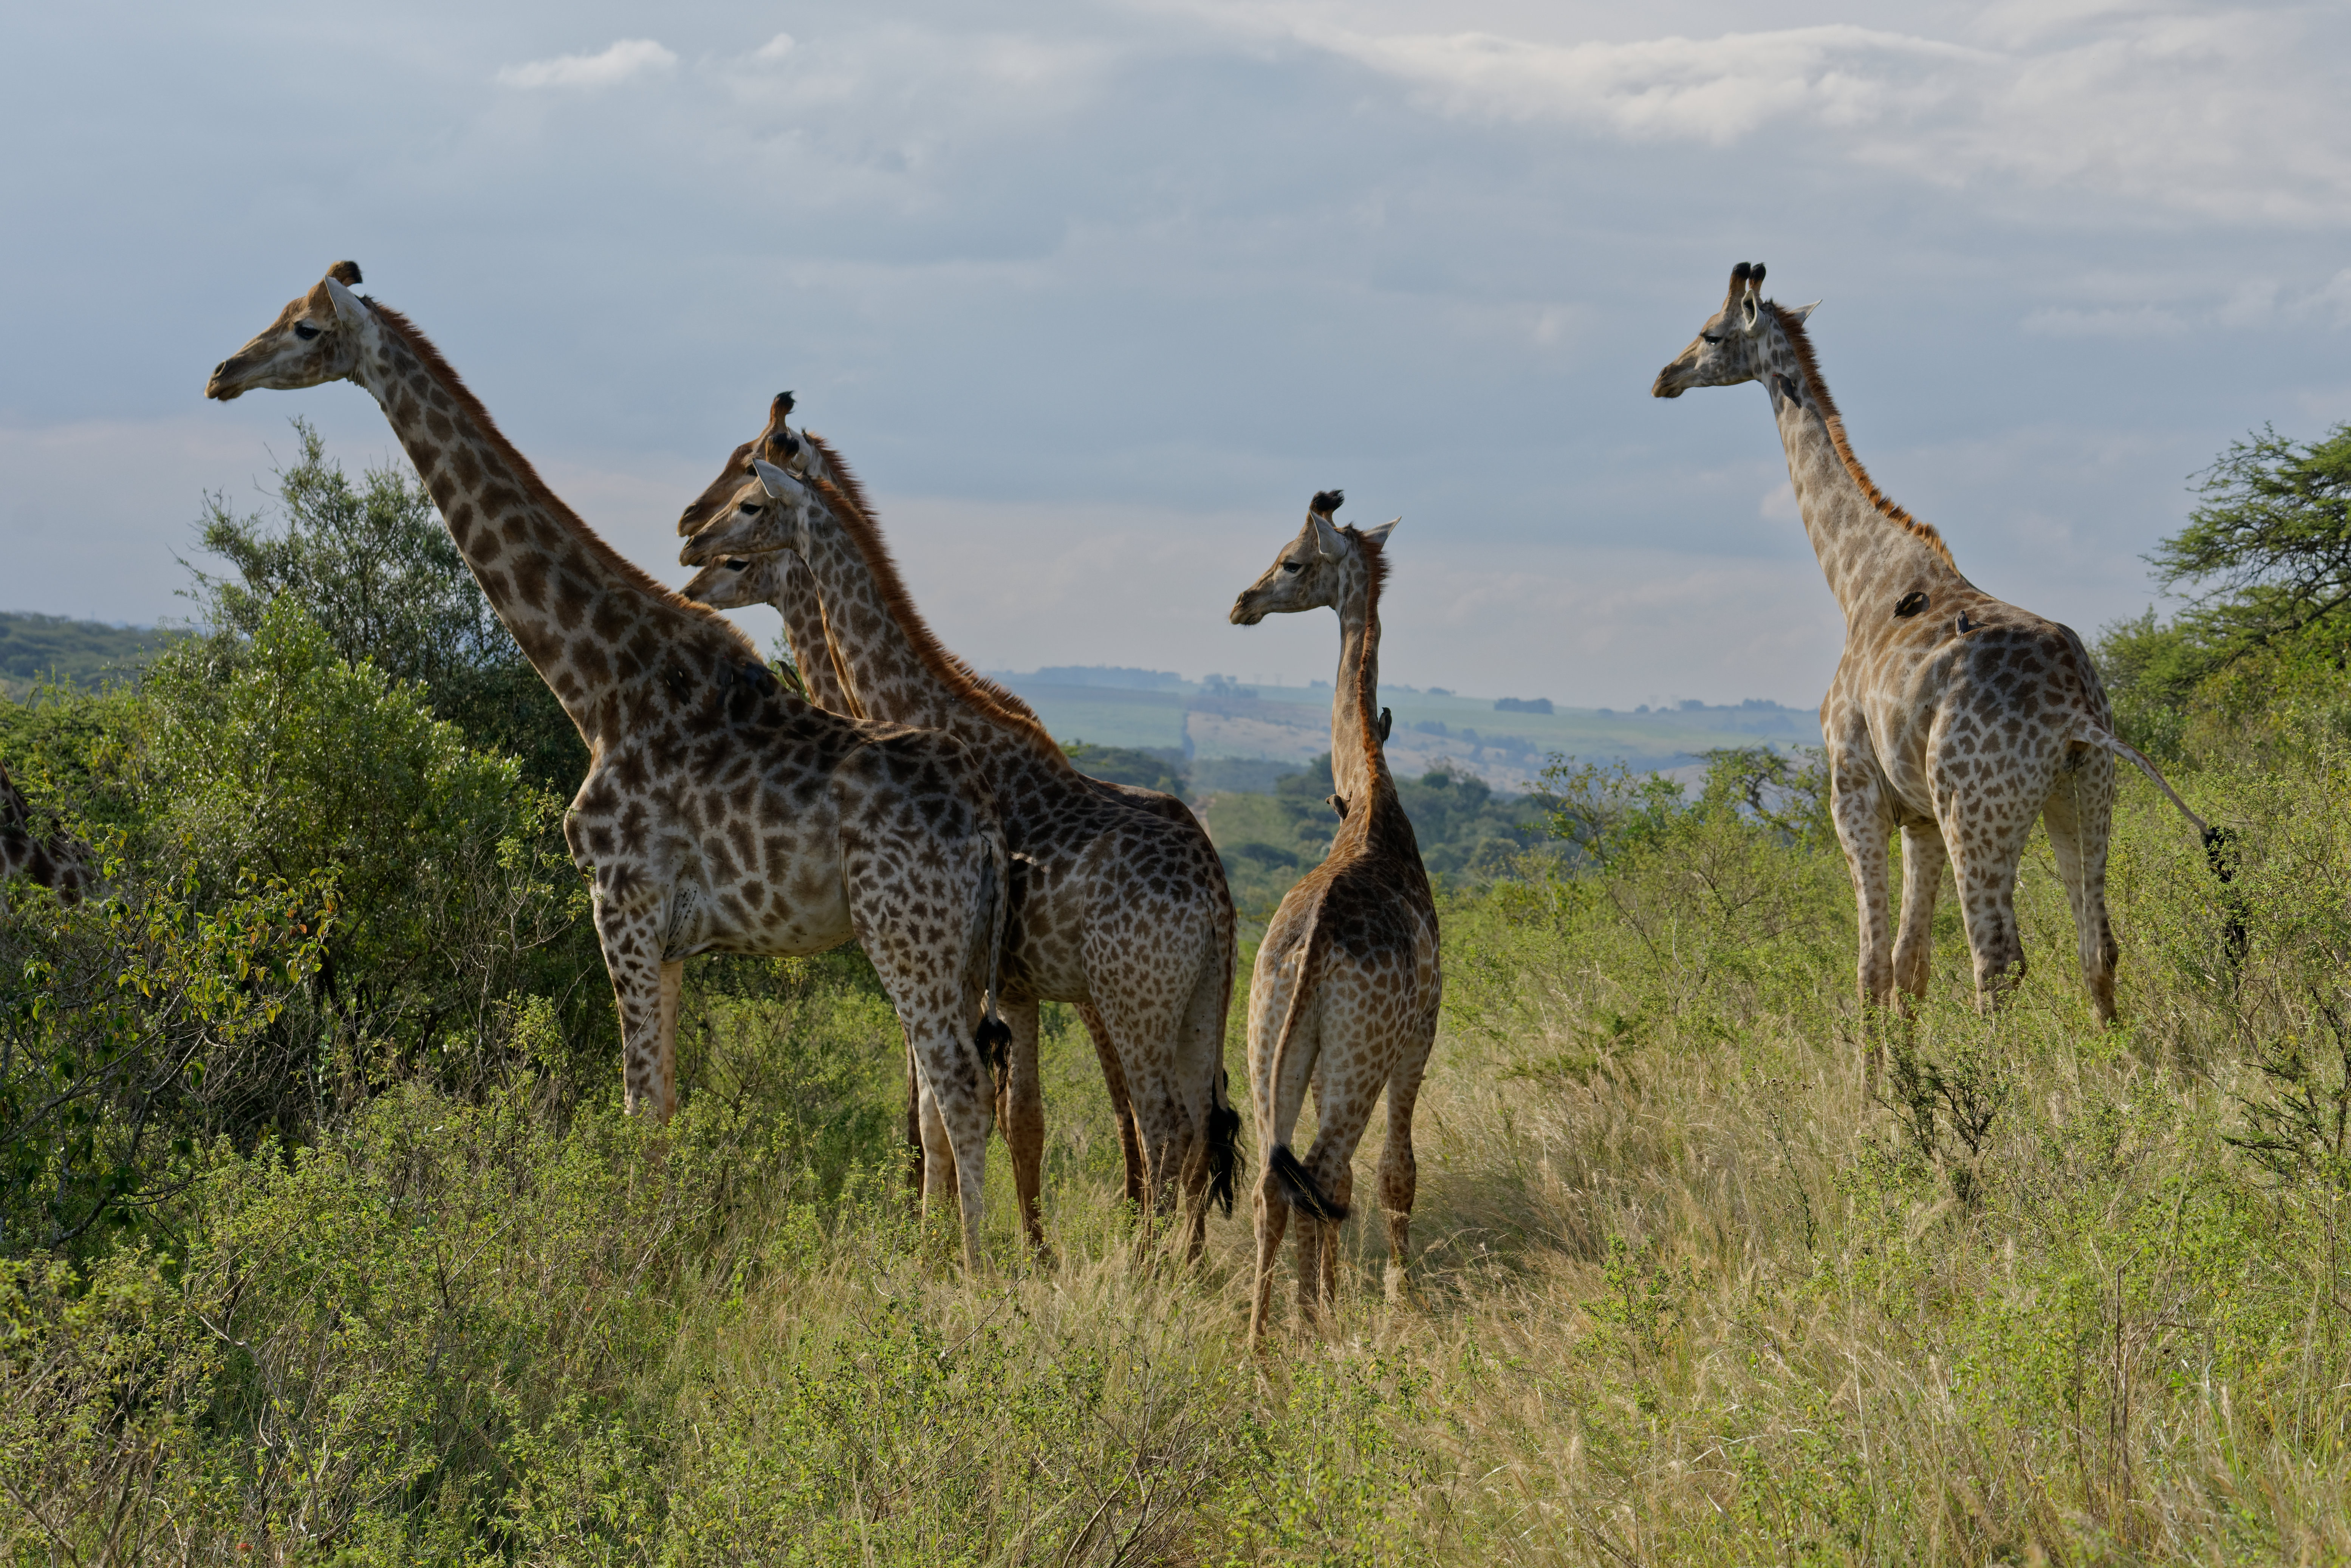 Trump administration pressured to help protect giraffes as they disappear